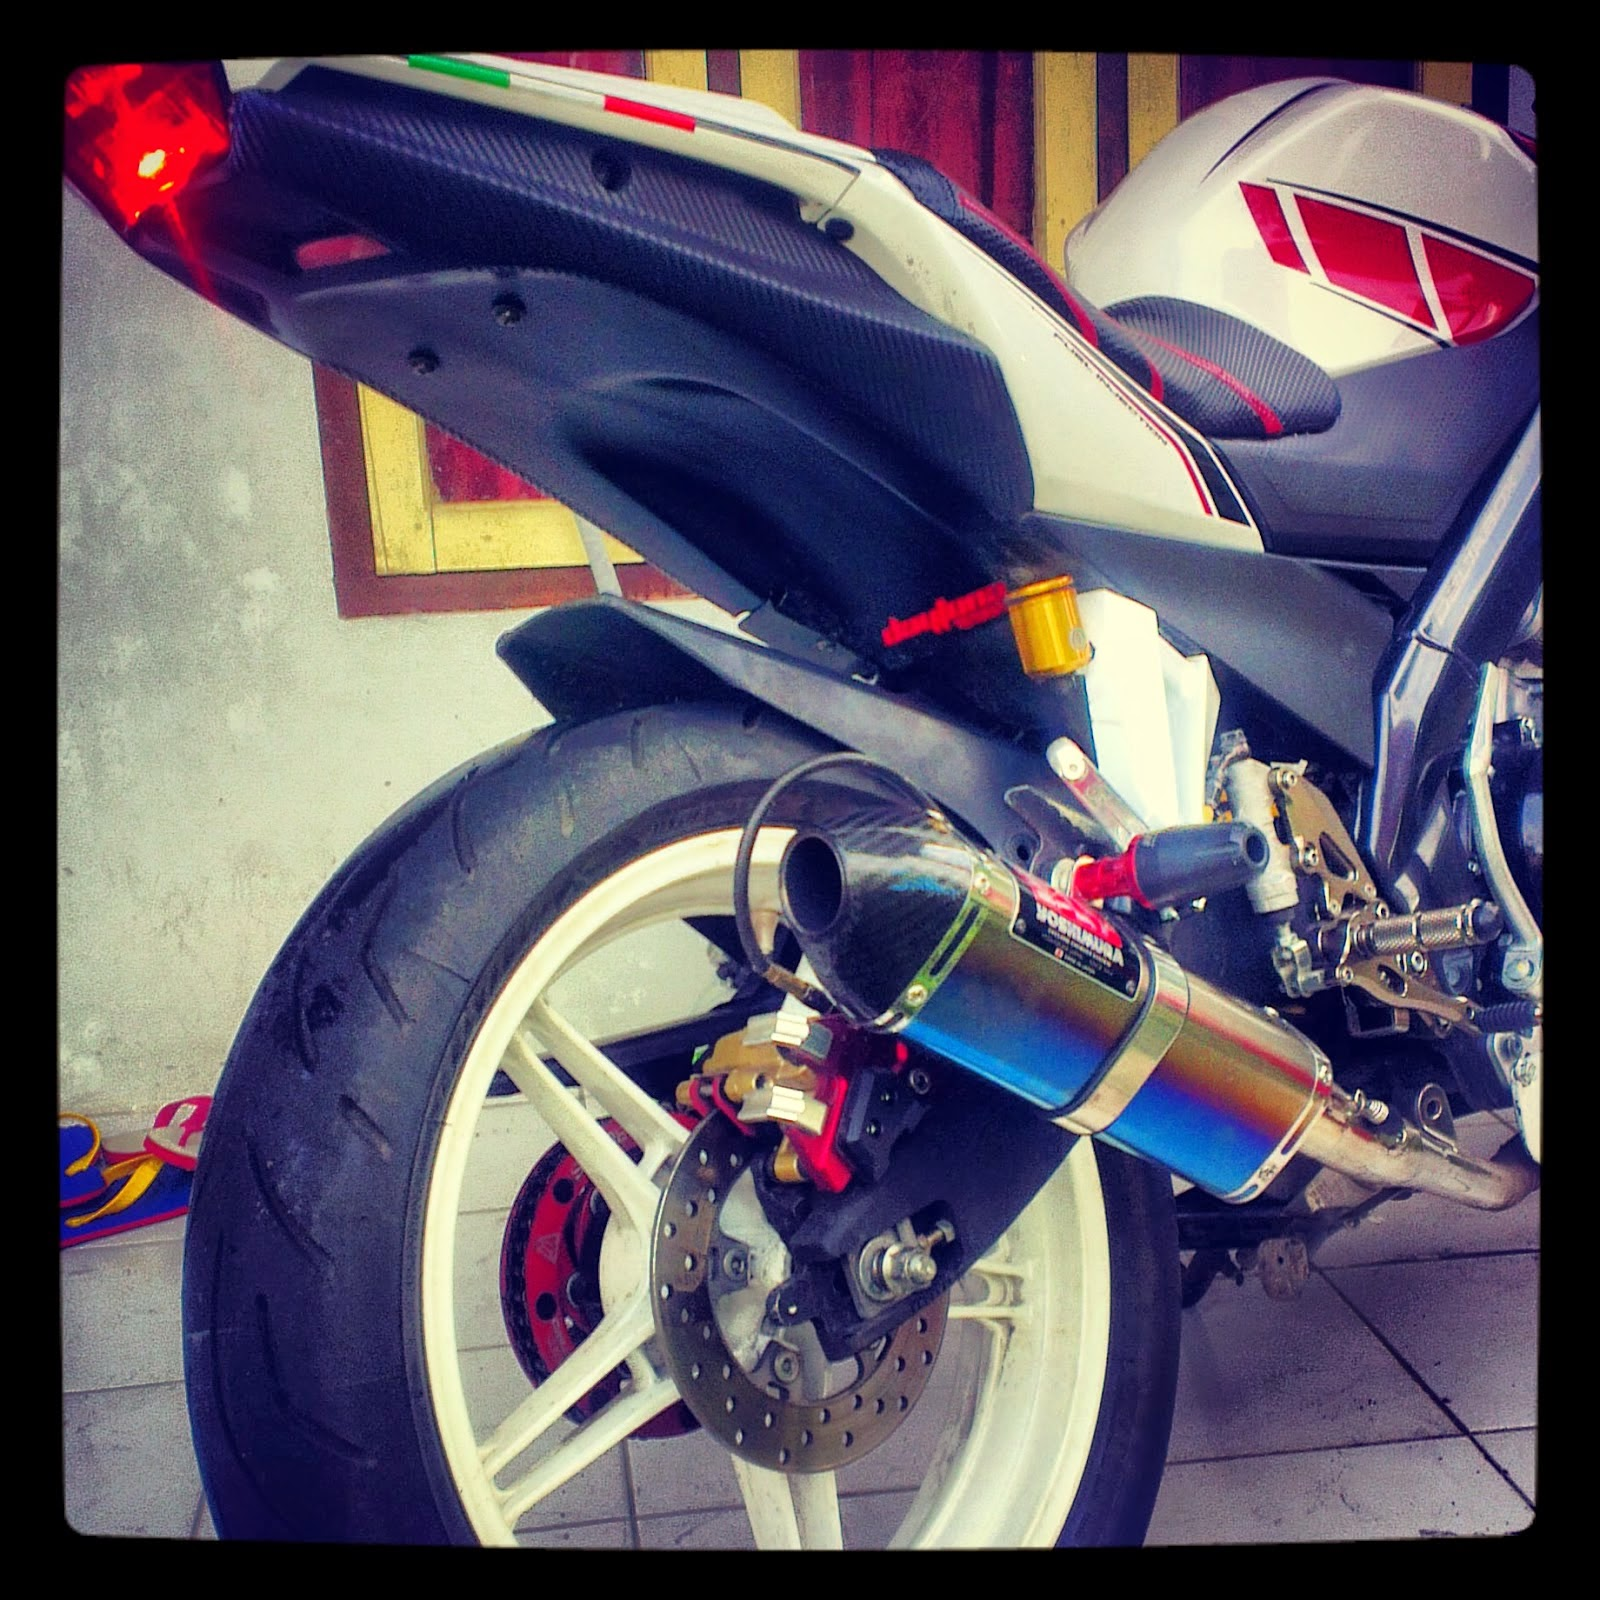 Download Modifikasi Motor New Vixion Street Fighter Terbaru